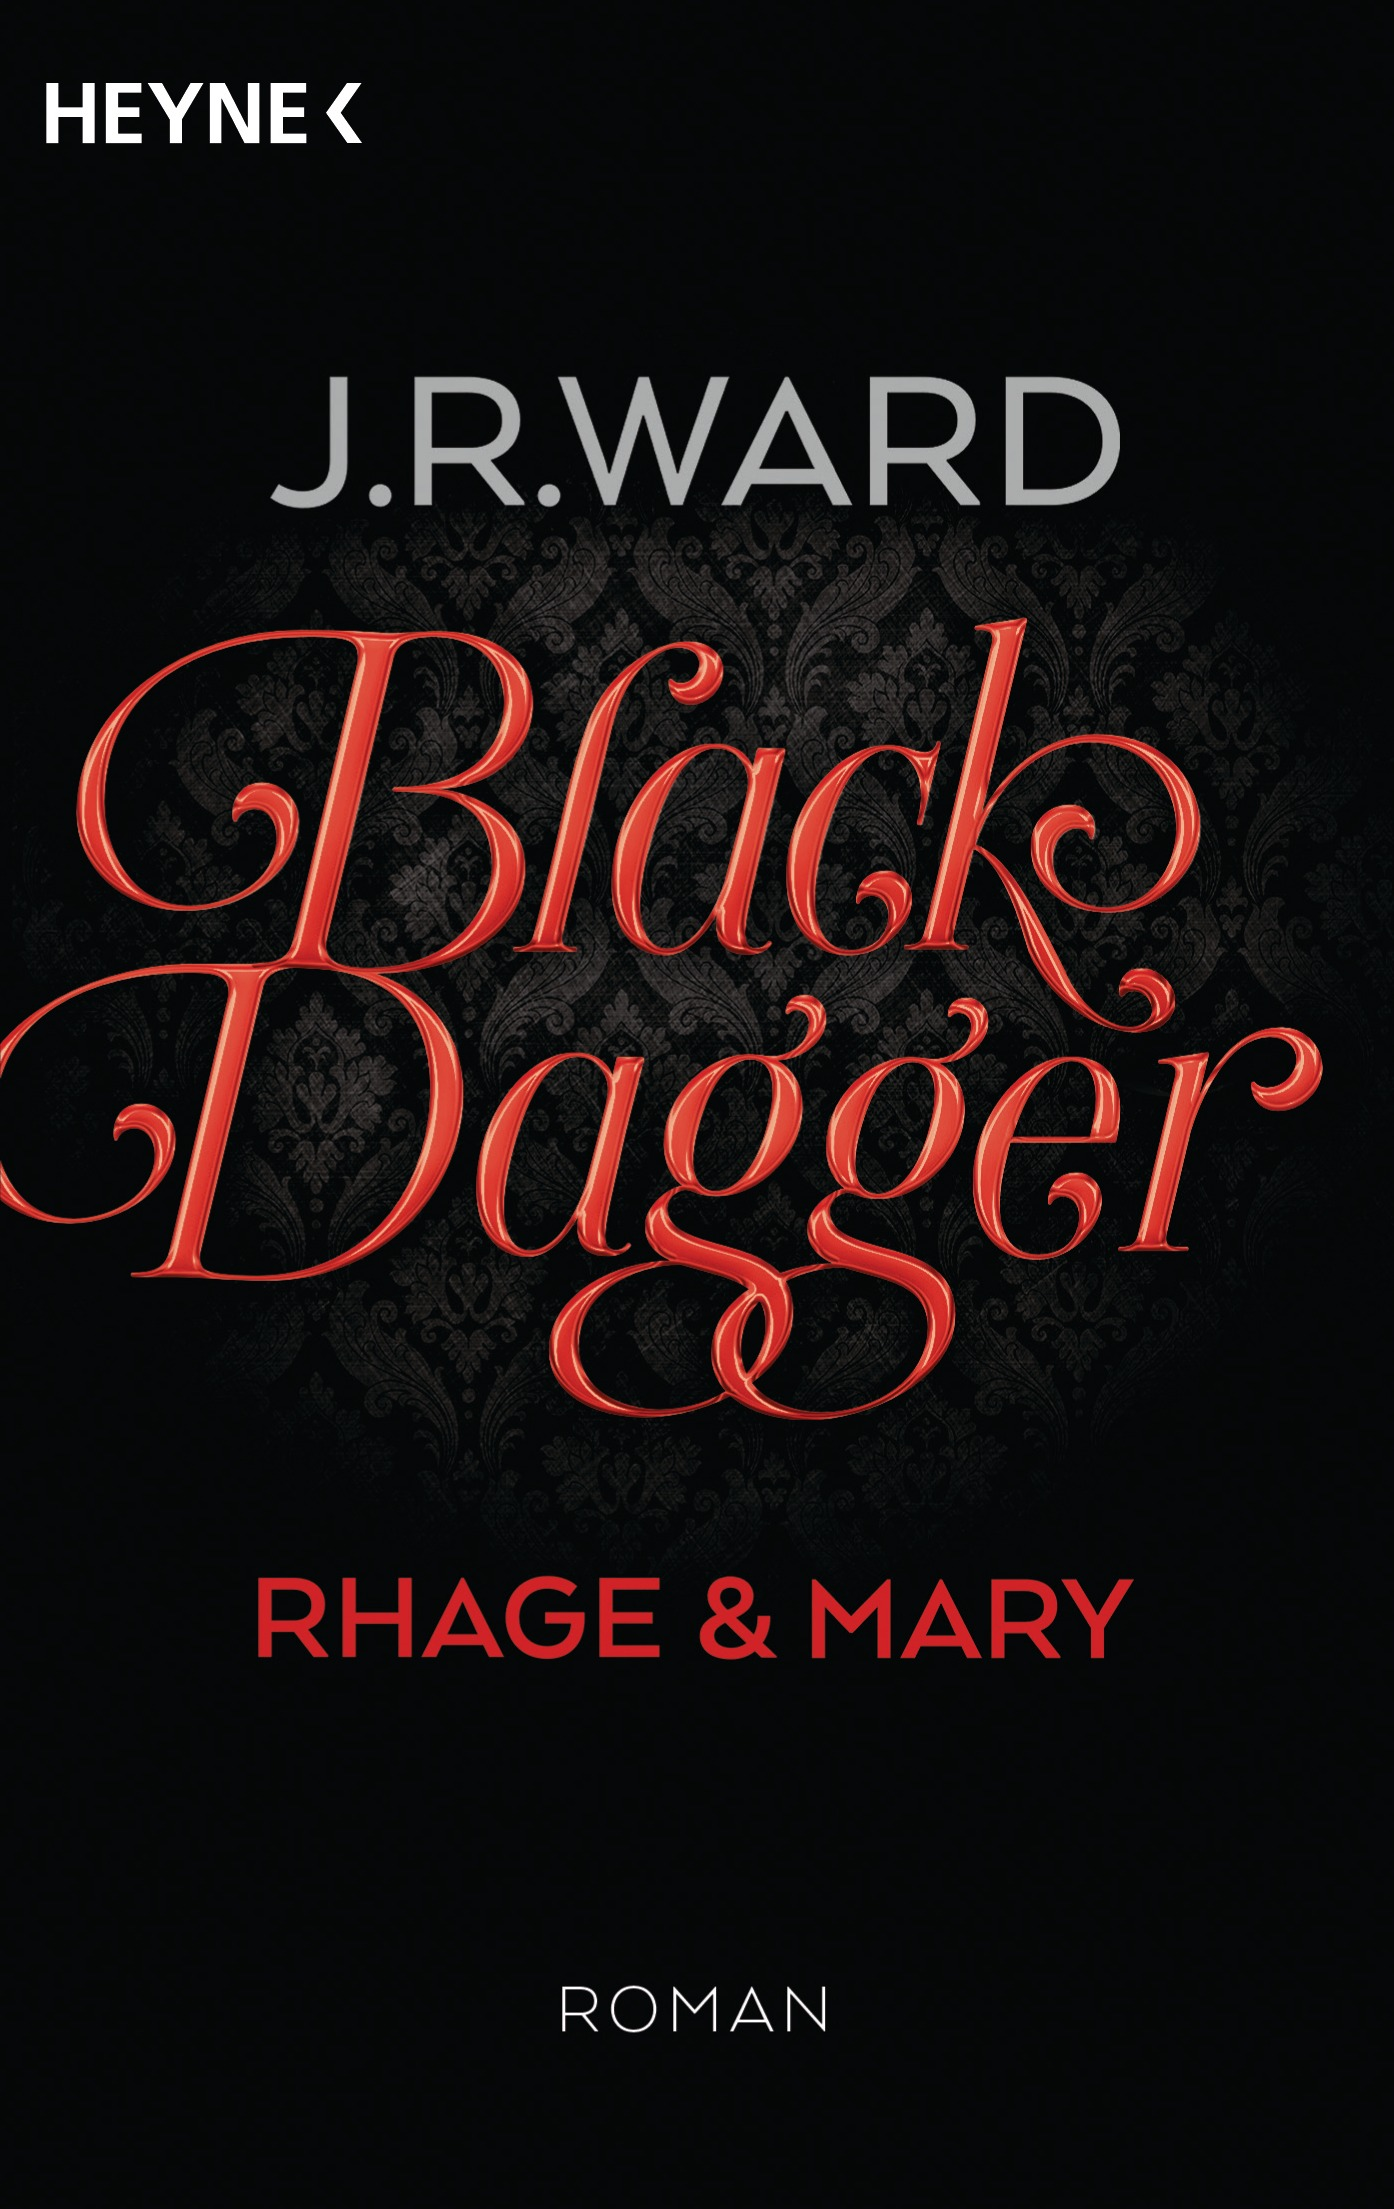 http://www.randomhouse.de/content/edition/covervoila_hires/Ward_JR_Black_Dagger_2Rhage_Mary_164765.jpg